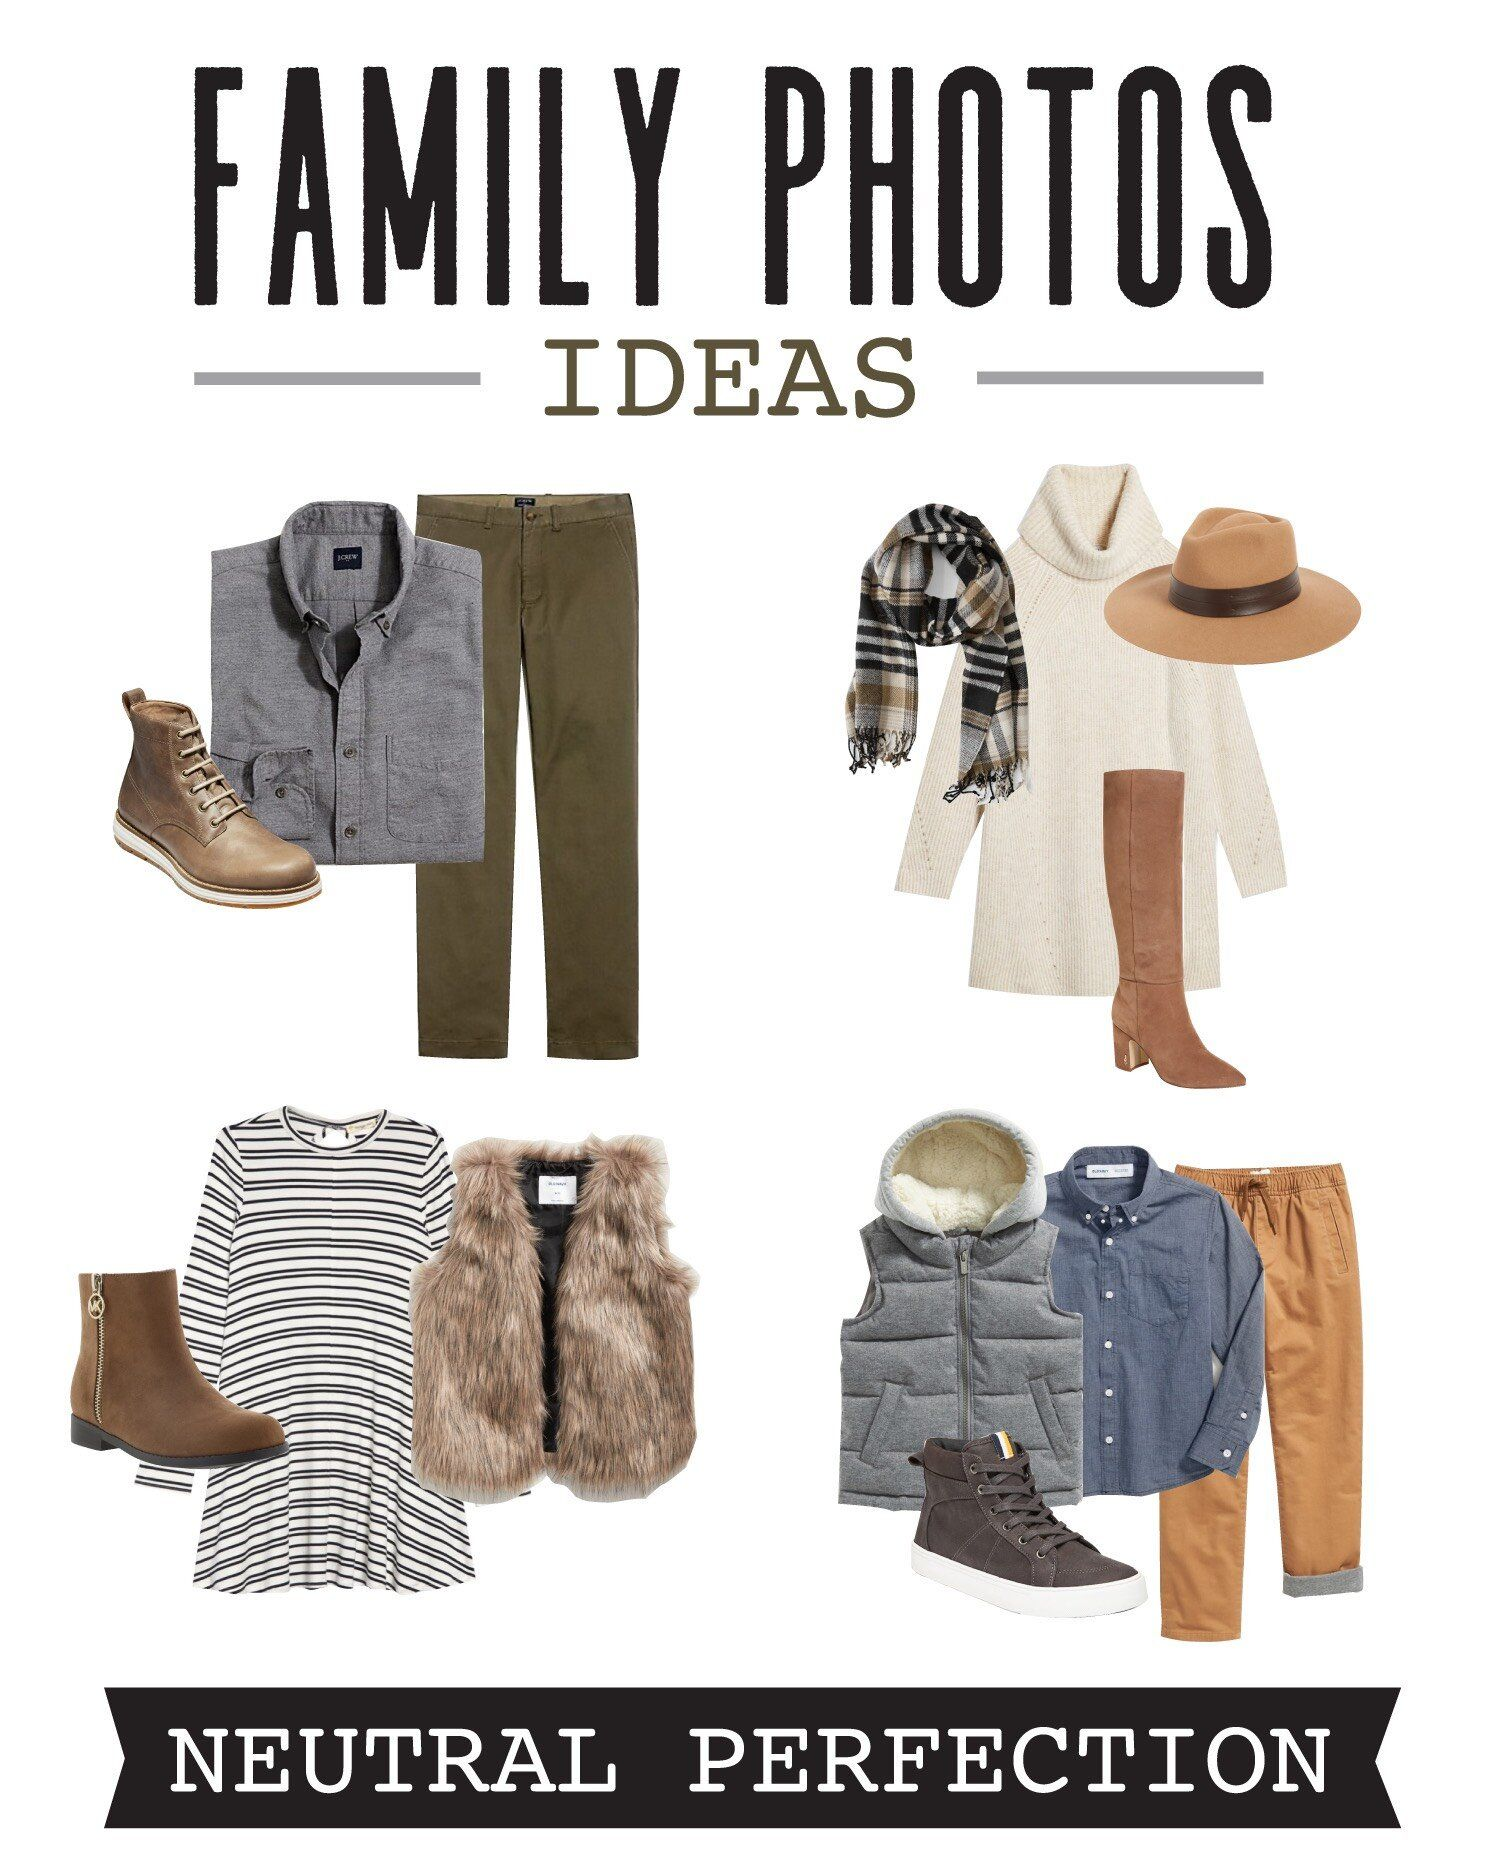 Coordinating Family Photo Outfit Ideas #familyphotooutfits